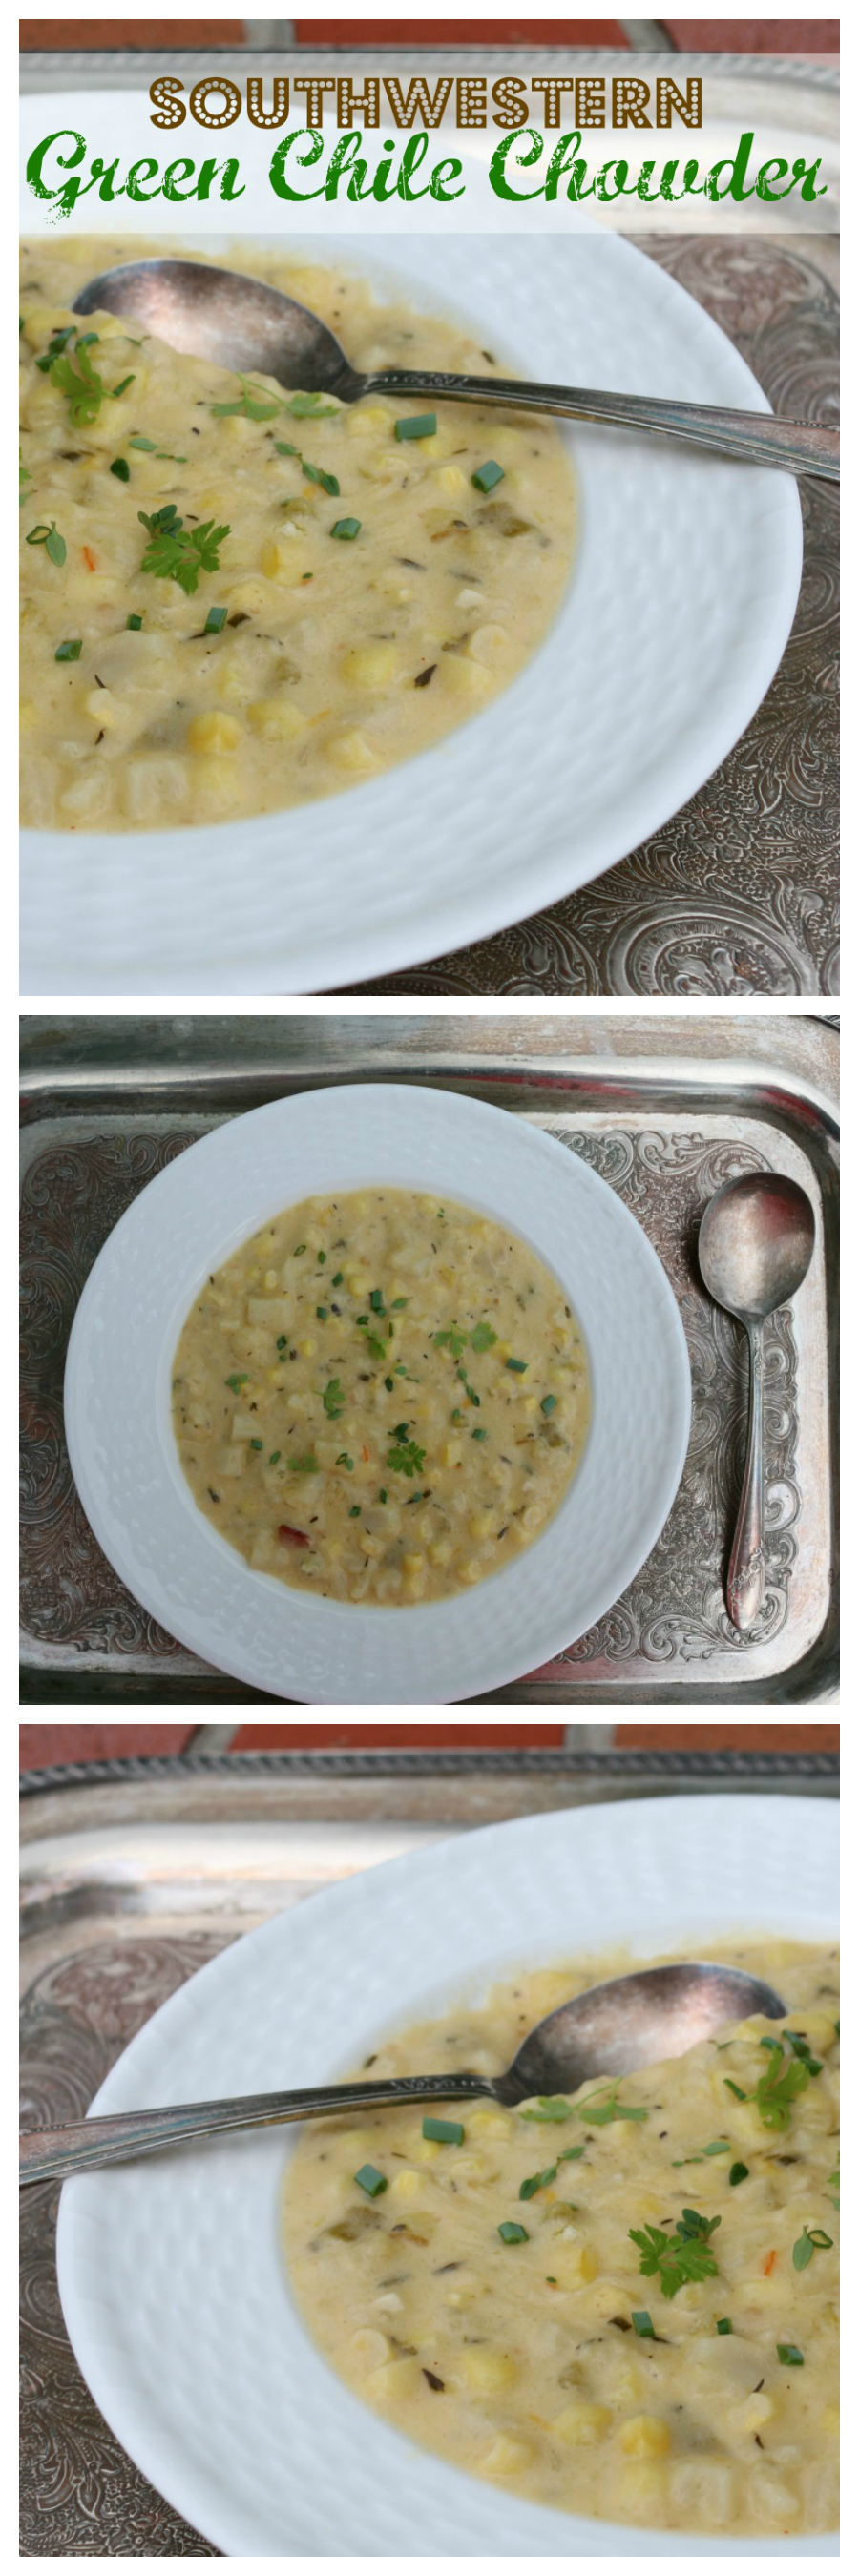 Southwestern Green Chile Corn Chowder Recipe by CeceliasGoodStuff.com | Good Food for Good People